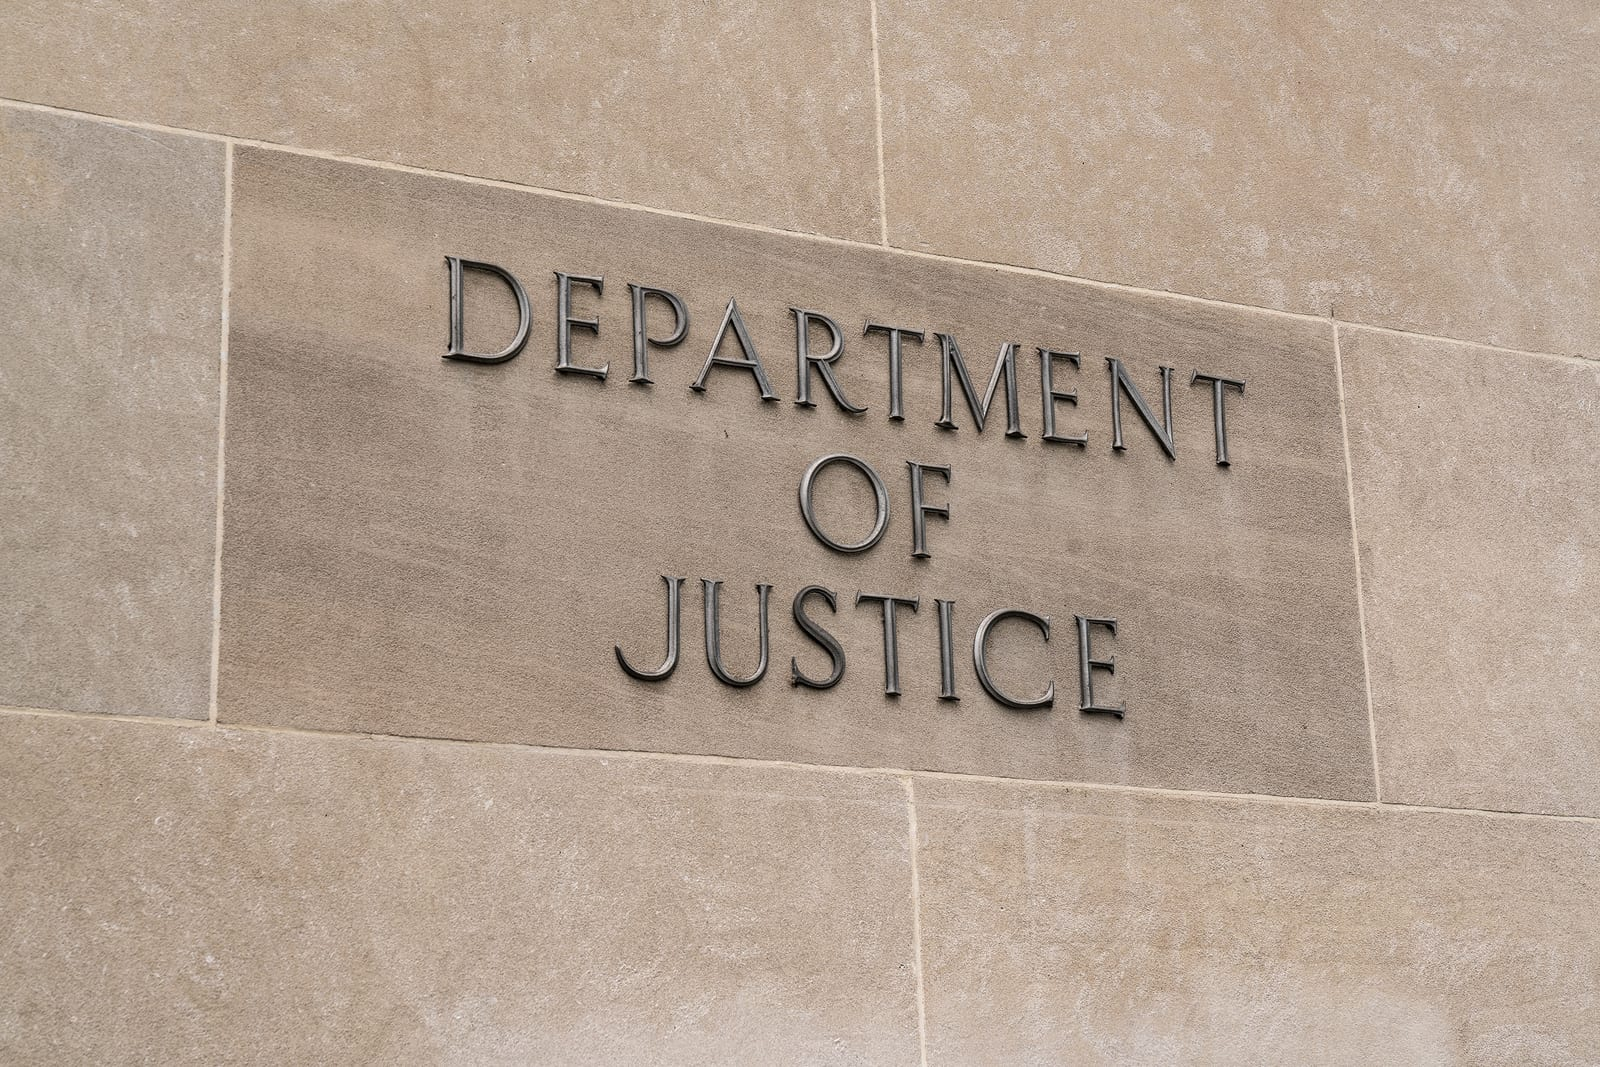 Ohio News: The U.S. Attorney's Office filed highest number of narcotics and violent crime indictments since at least 2005